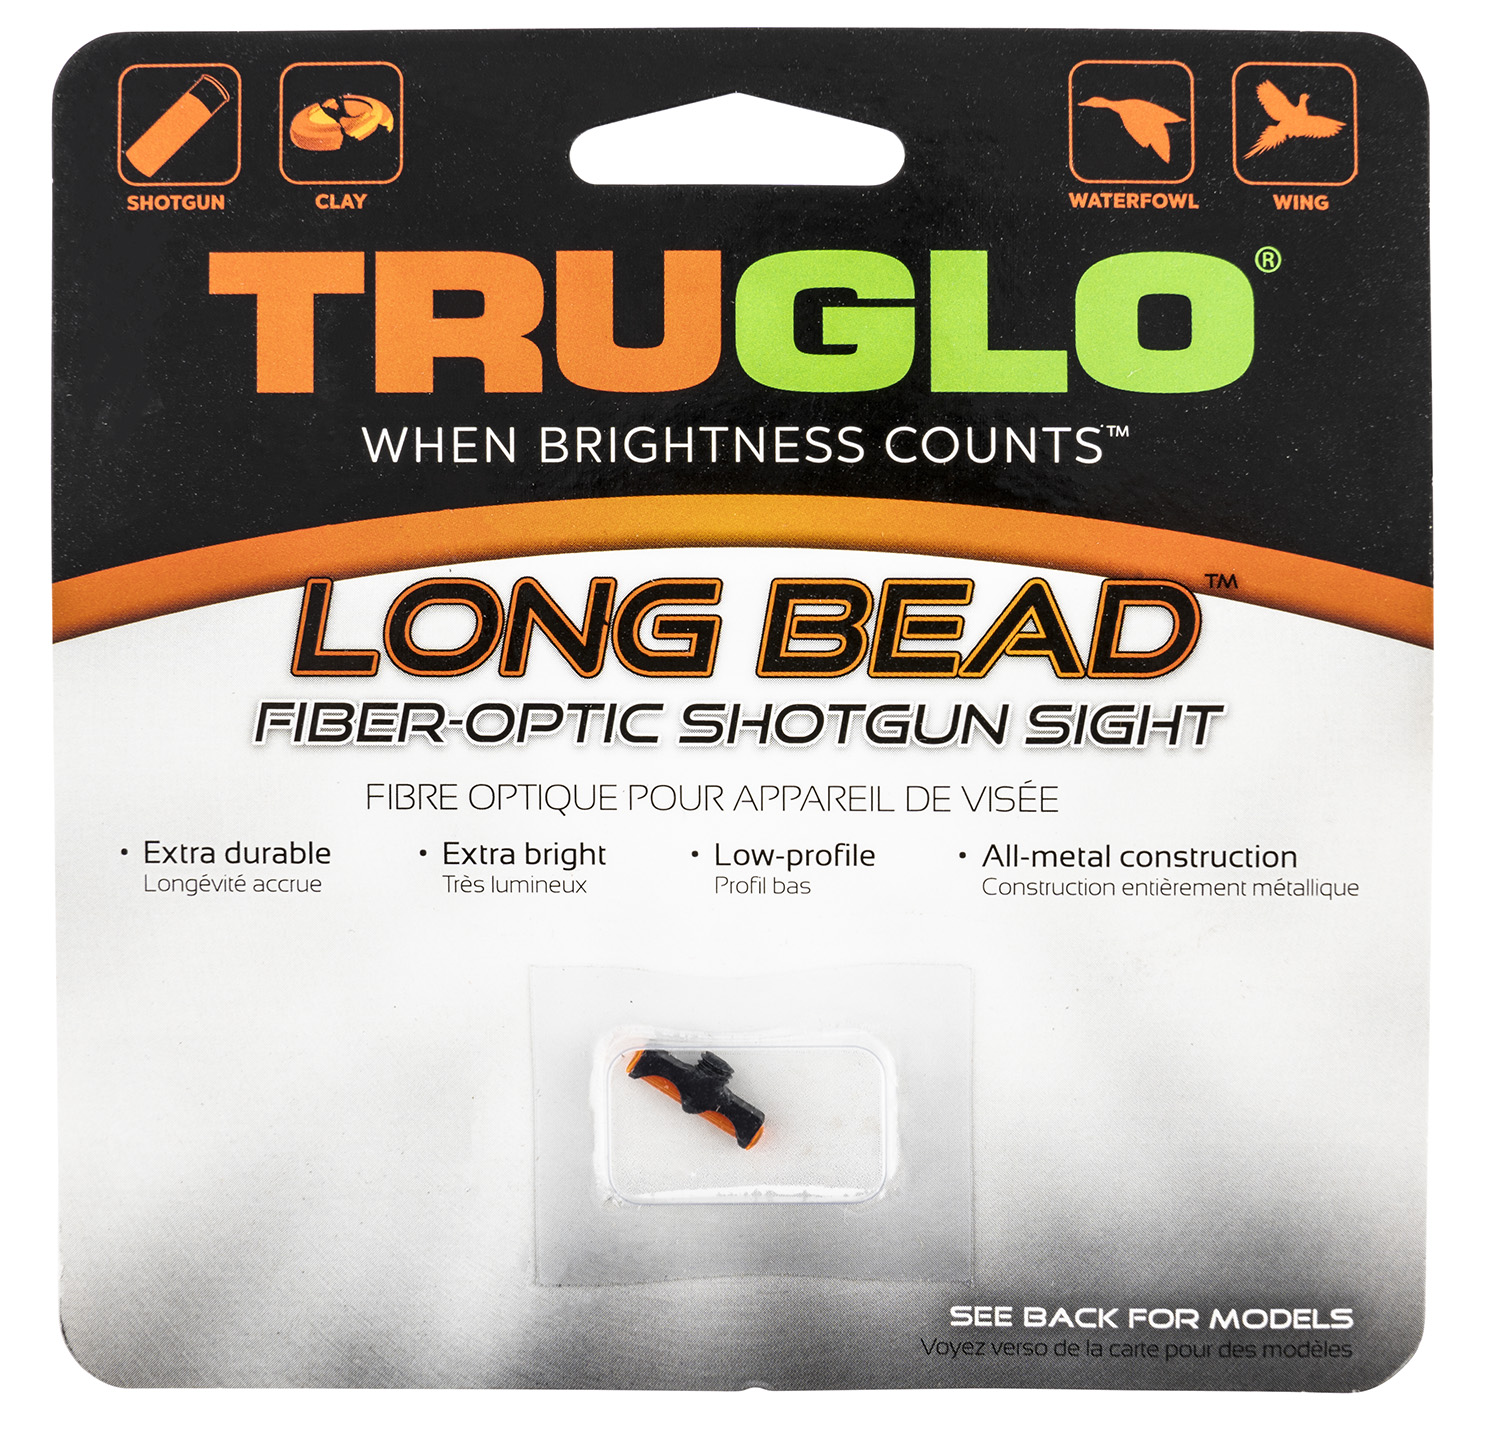 Truglo TG947CRM Long Bead Shotgun Sight Beretta & Benelli Red